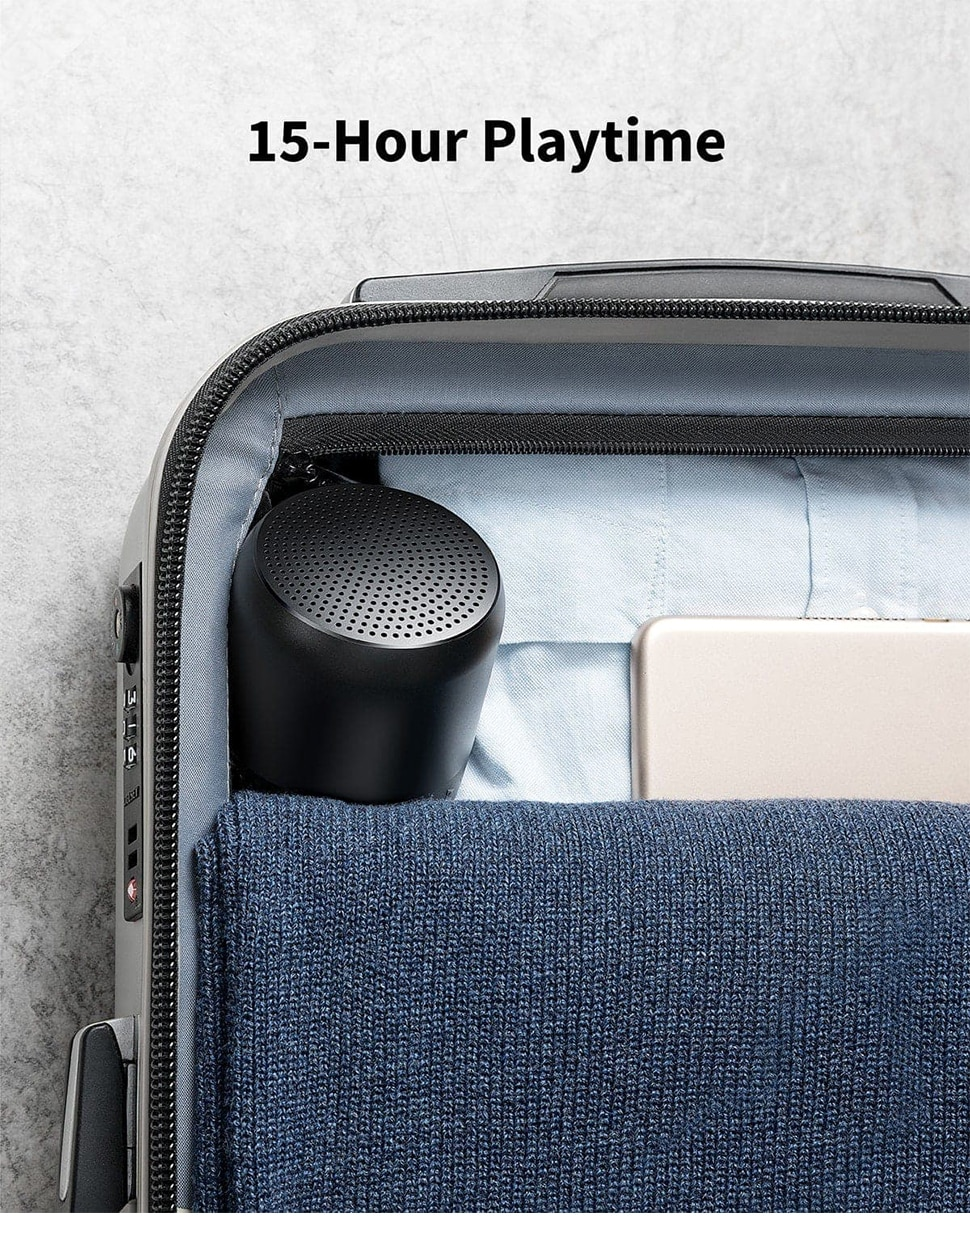 H12748ebeaf3d41f3987dce9215e2c9a5G - Anker Soundcore Mini 2 Pocket Bluetooth IPX7 Waterproof Outdoor Speaker Powerful Sound with Enhanced Bass 15H Playtime